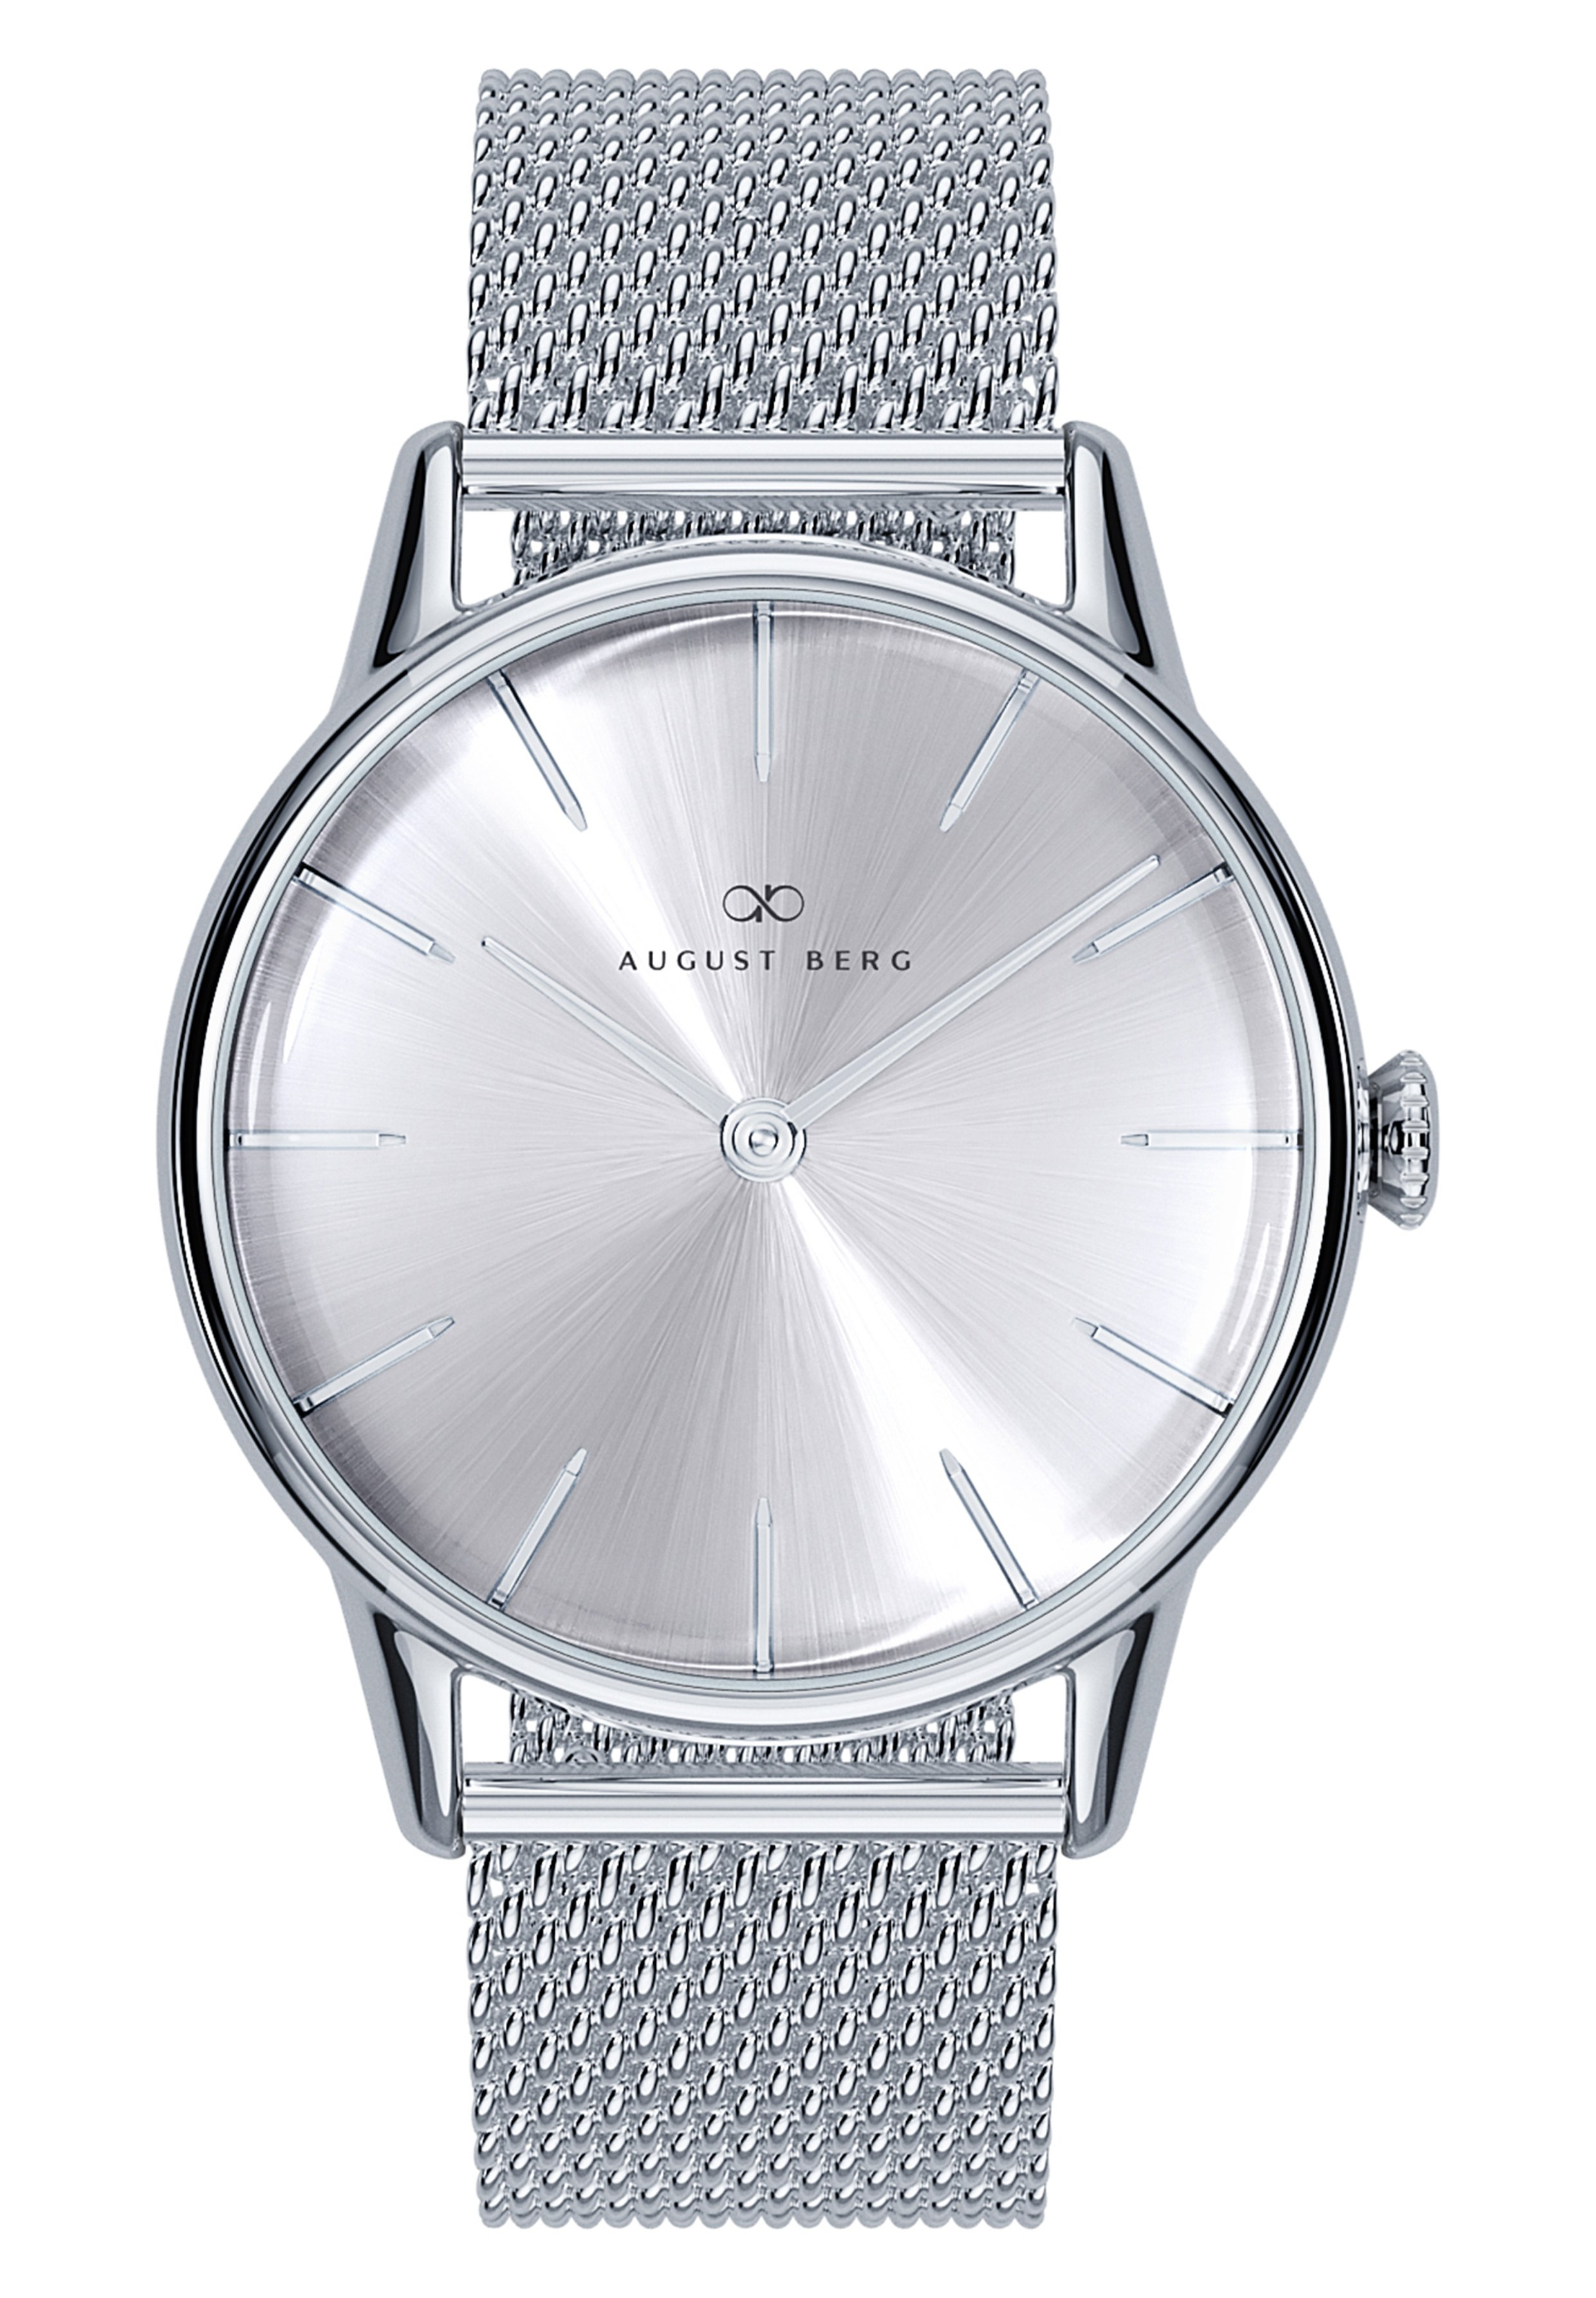 Herrer UHR SERENITY SIMPLY SILVER SILVER MESH 32MM - Ure